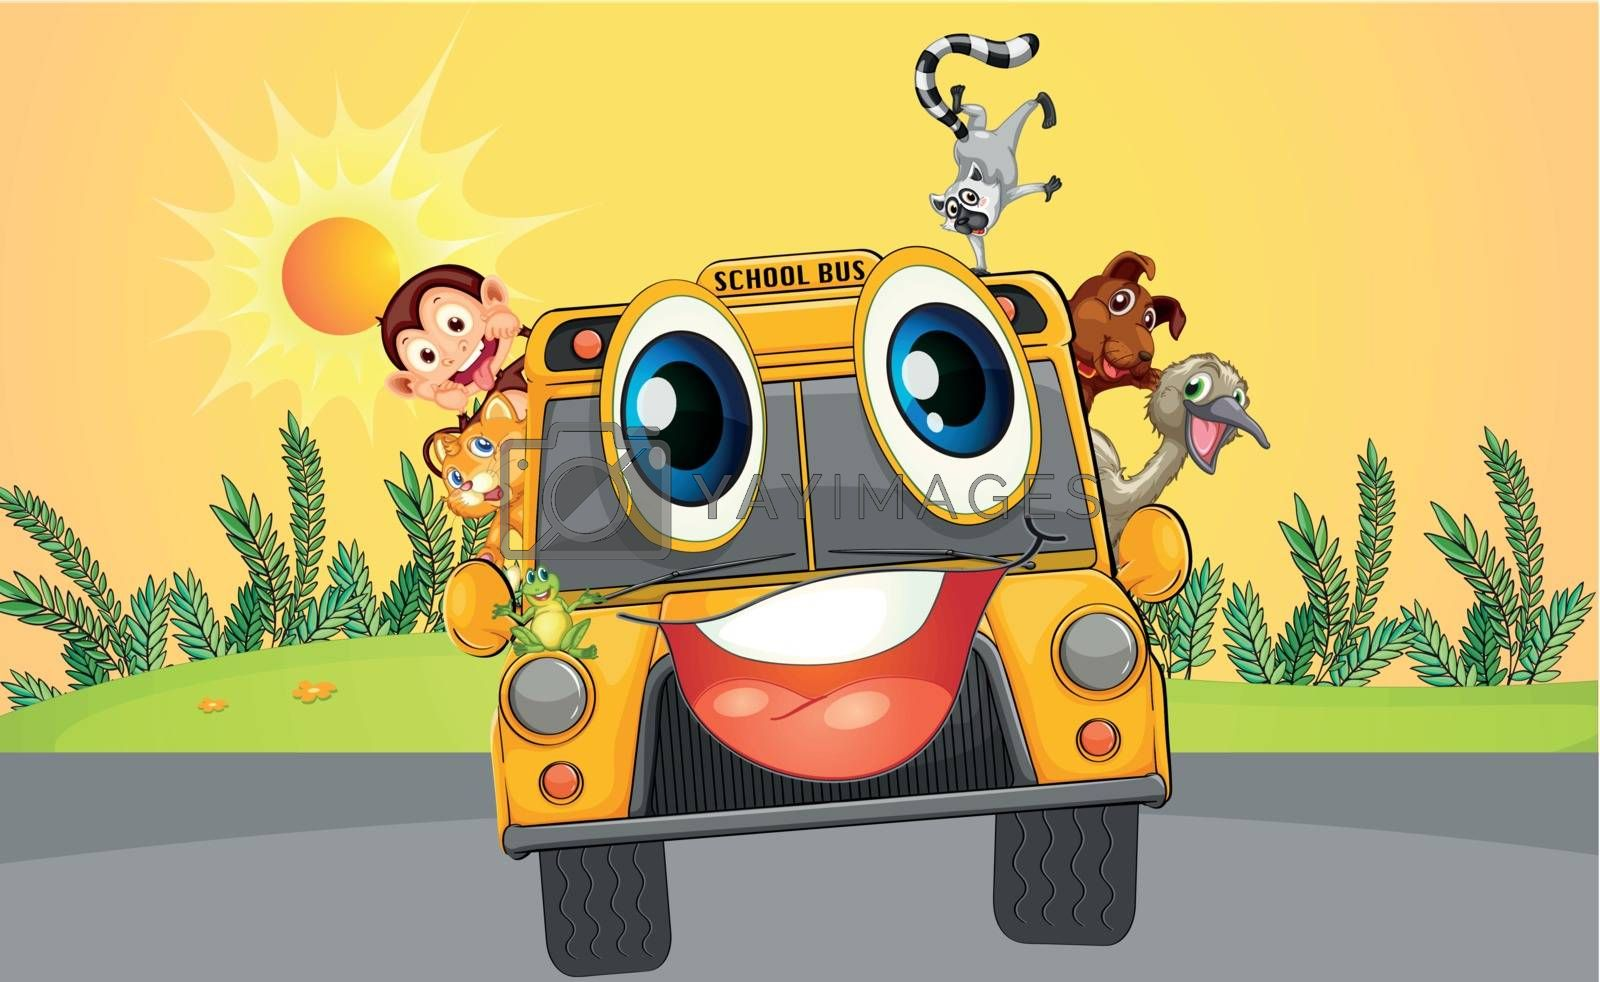 Illustration of a school bus with animals